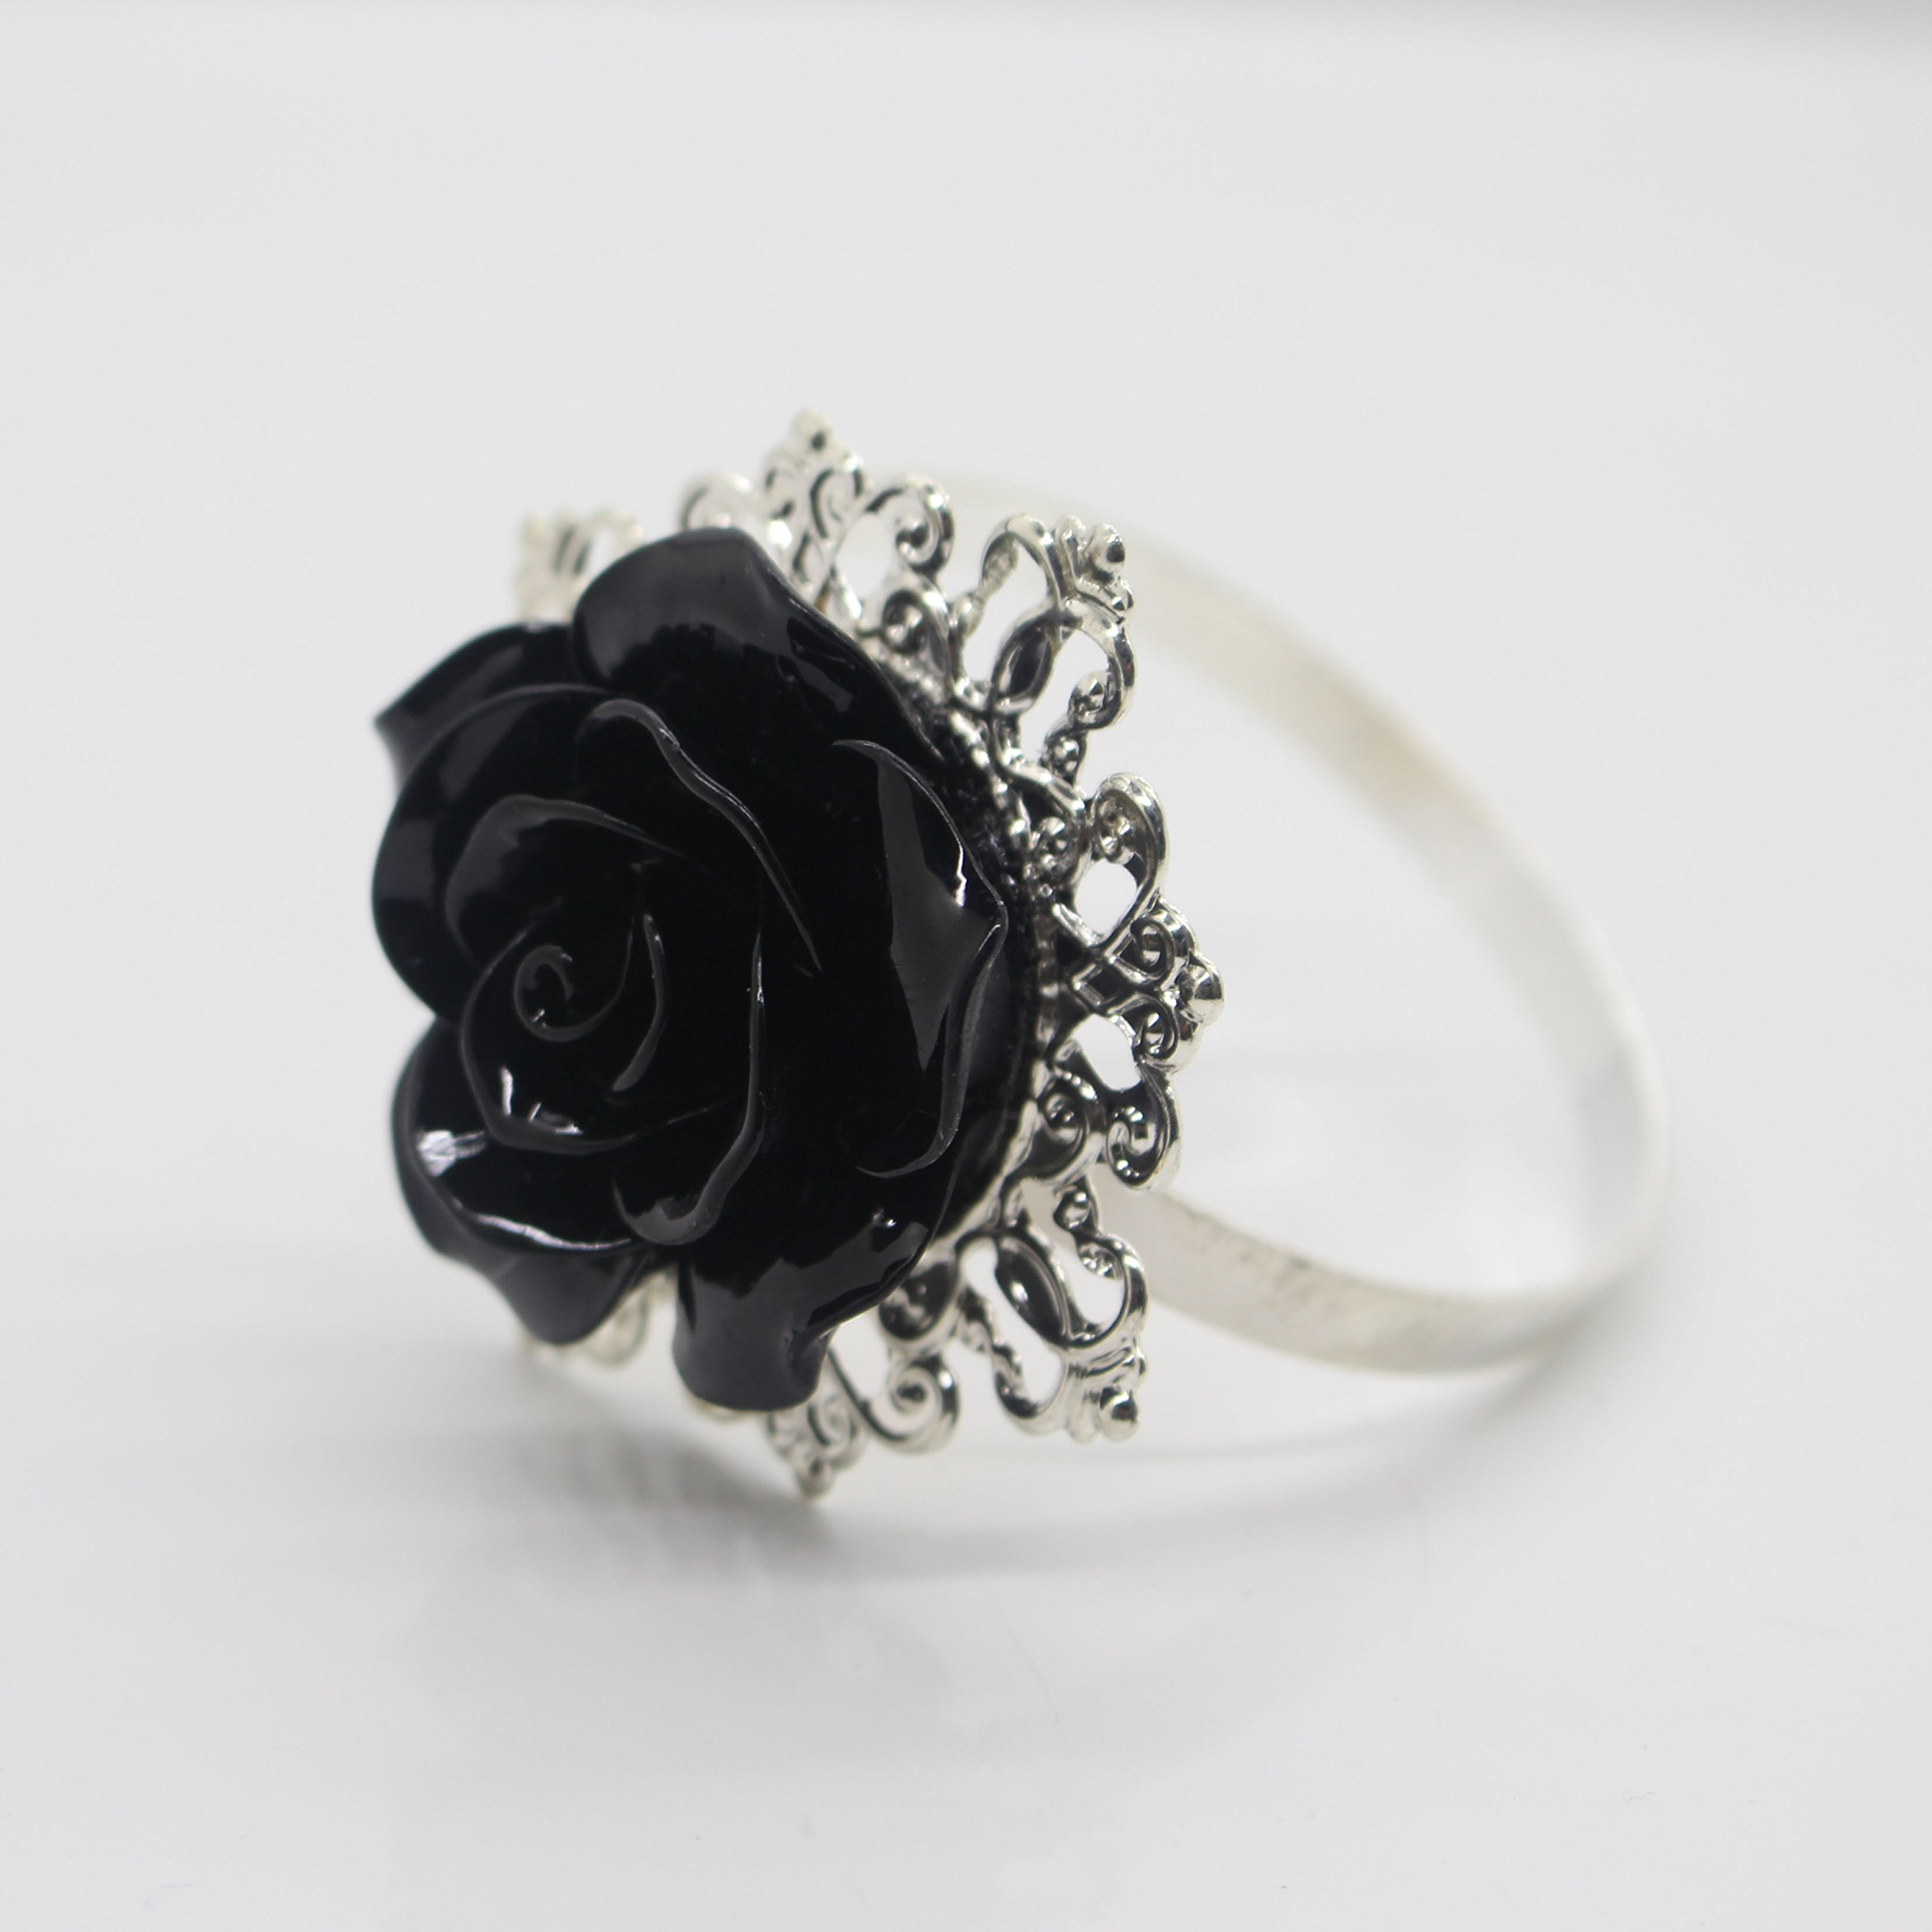 AngHui ShiPin 10pcs Black Rose Decorative Silver Napkin Ring Serviette Holder for Wedding Party Dinner Table Decor Many Color Available for Christmas Table